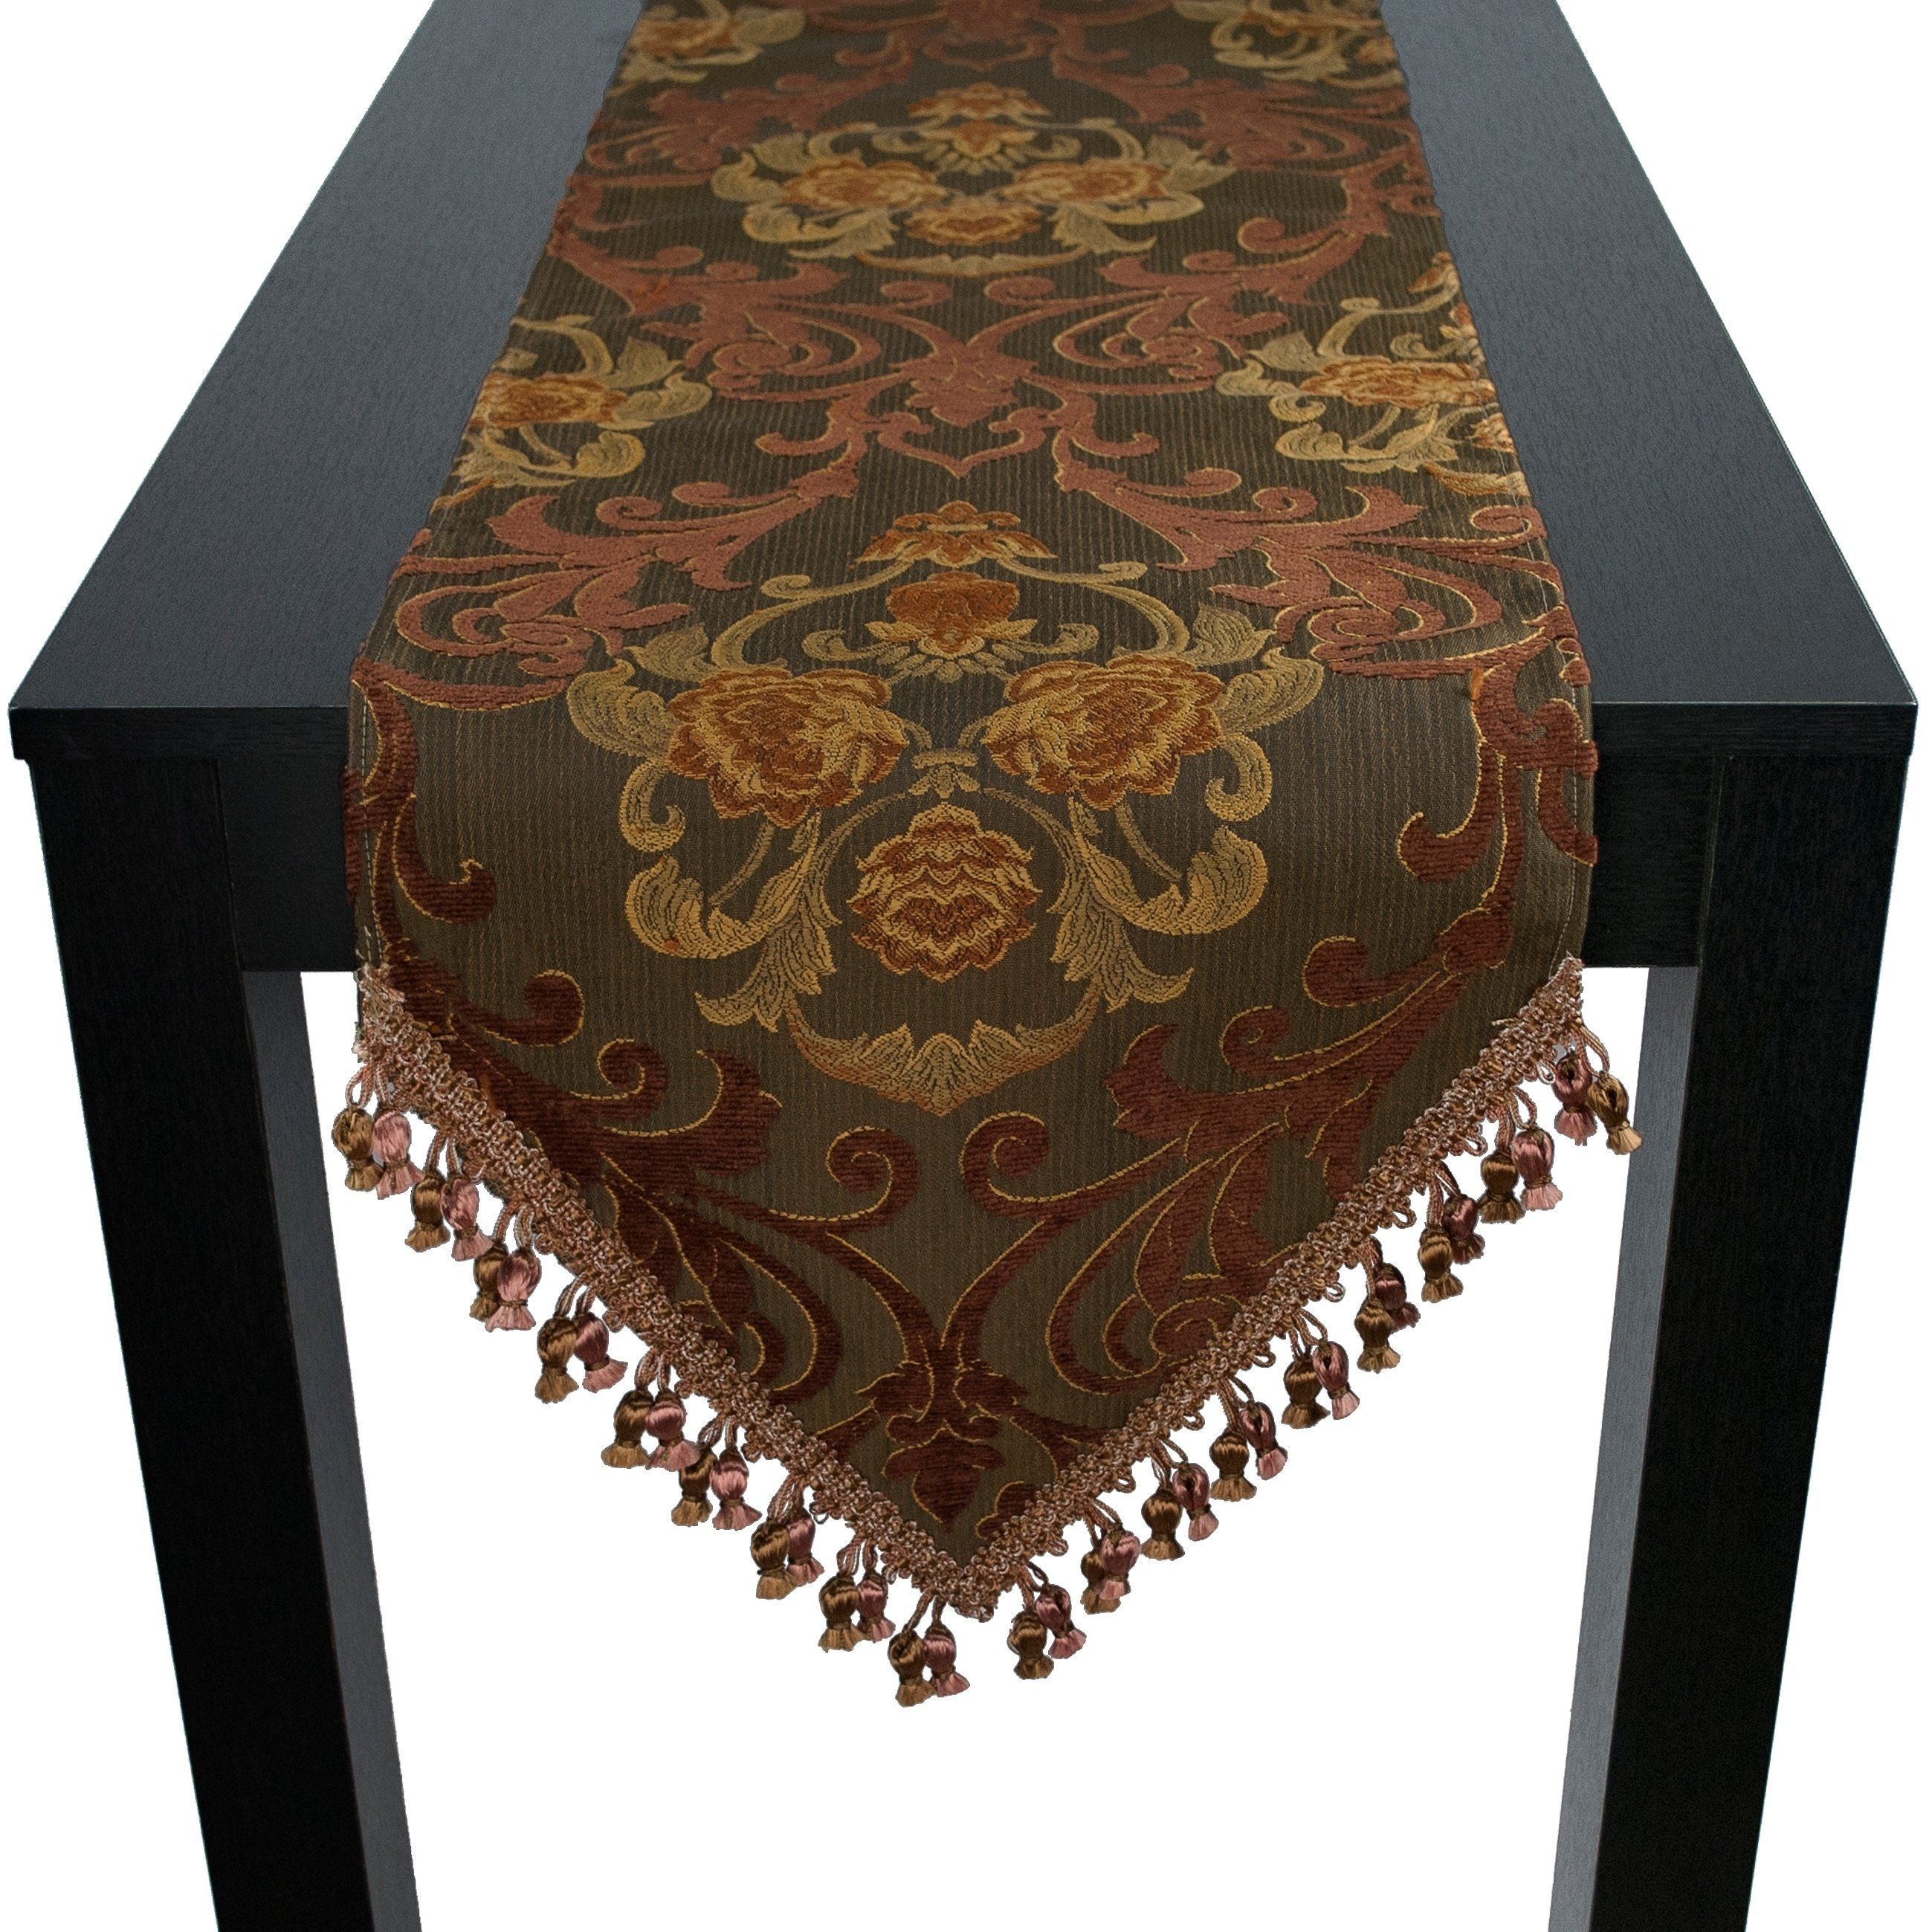 Sherry Kline Anderson 72 Inch Luxury Table Runner 12 X 72 Brown Polyester Products In 2019 Table Table Runners Table Linens